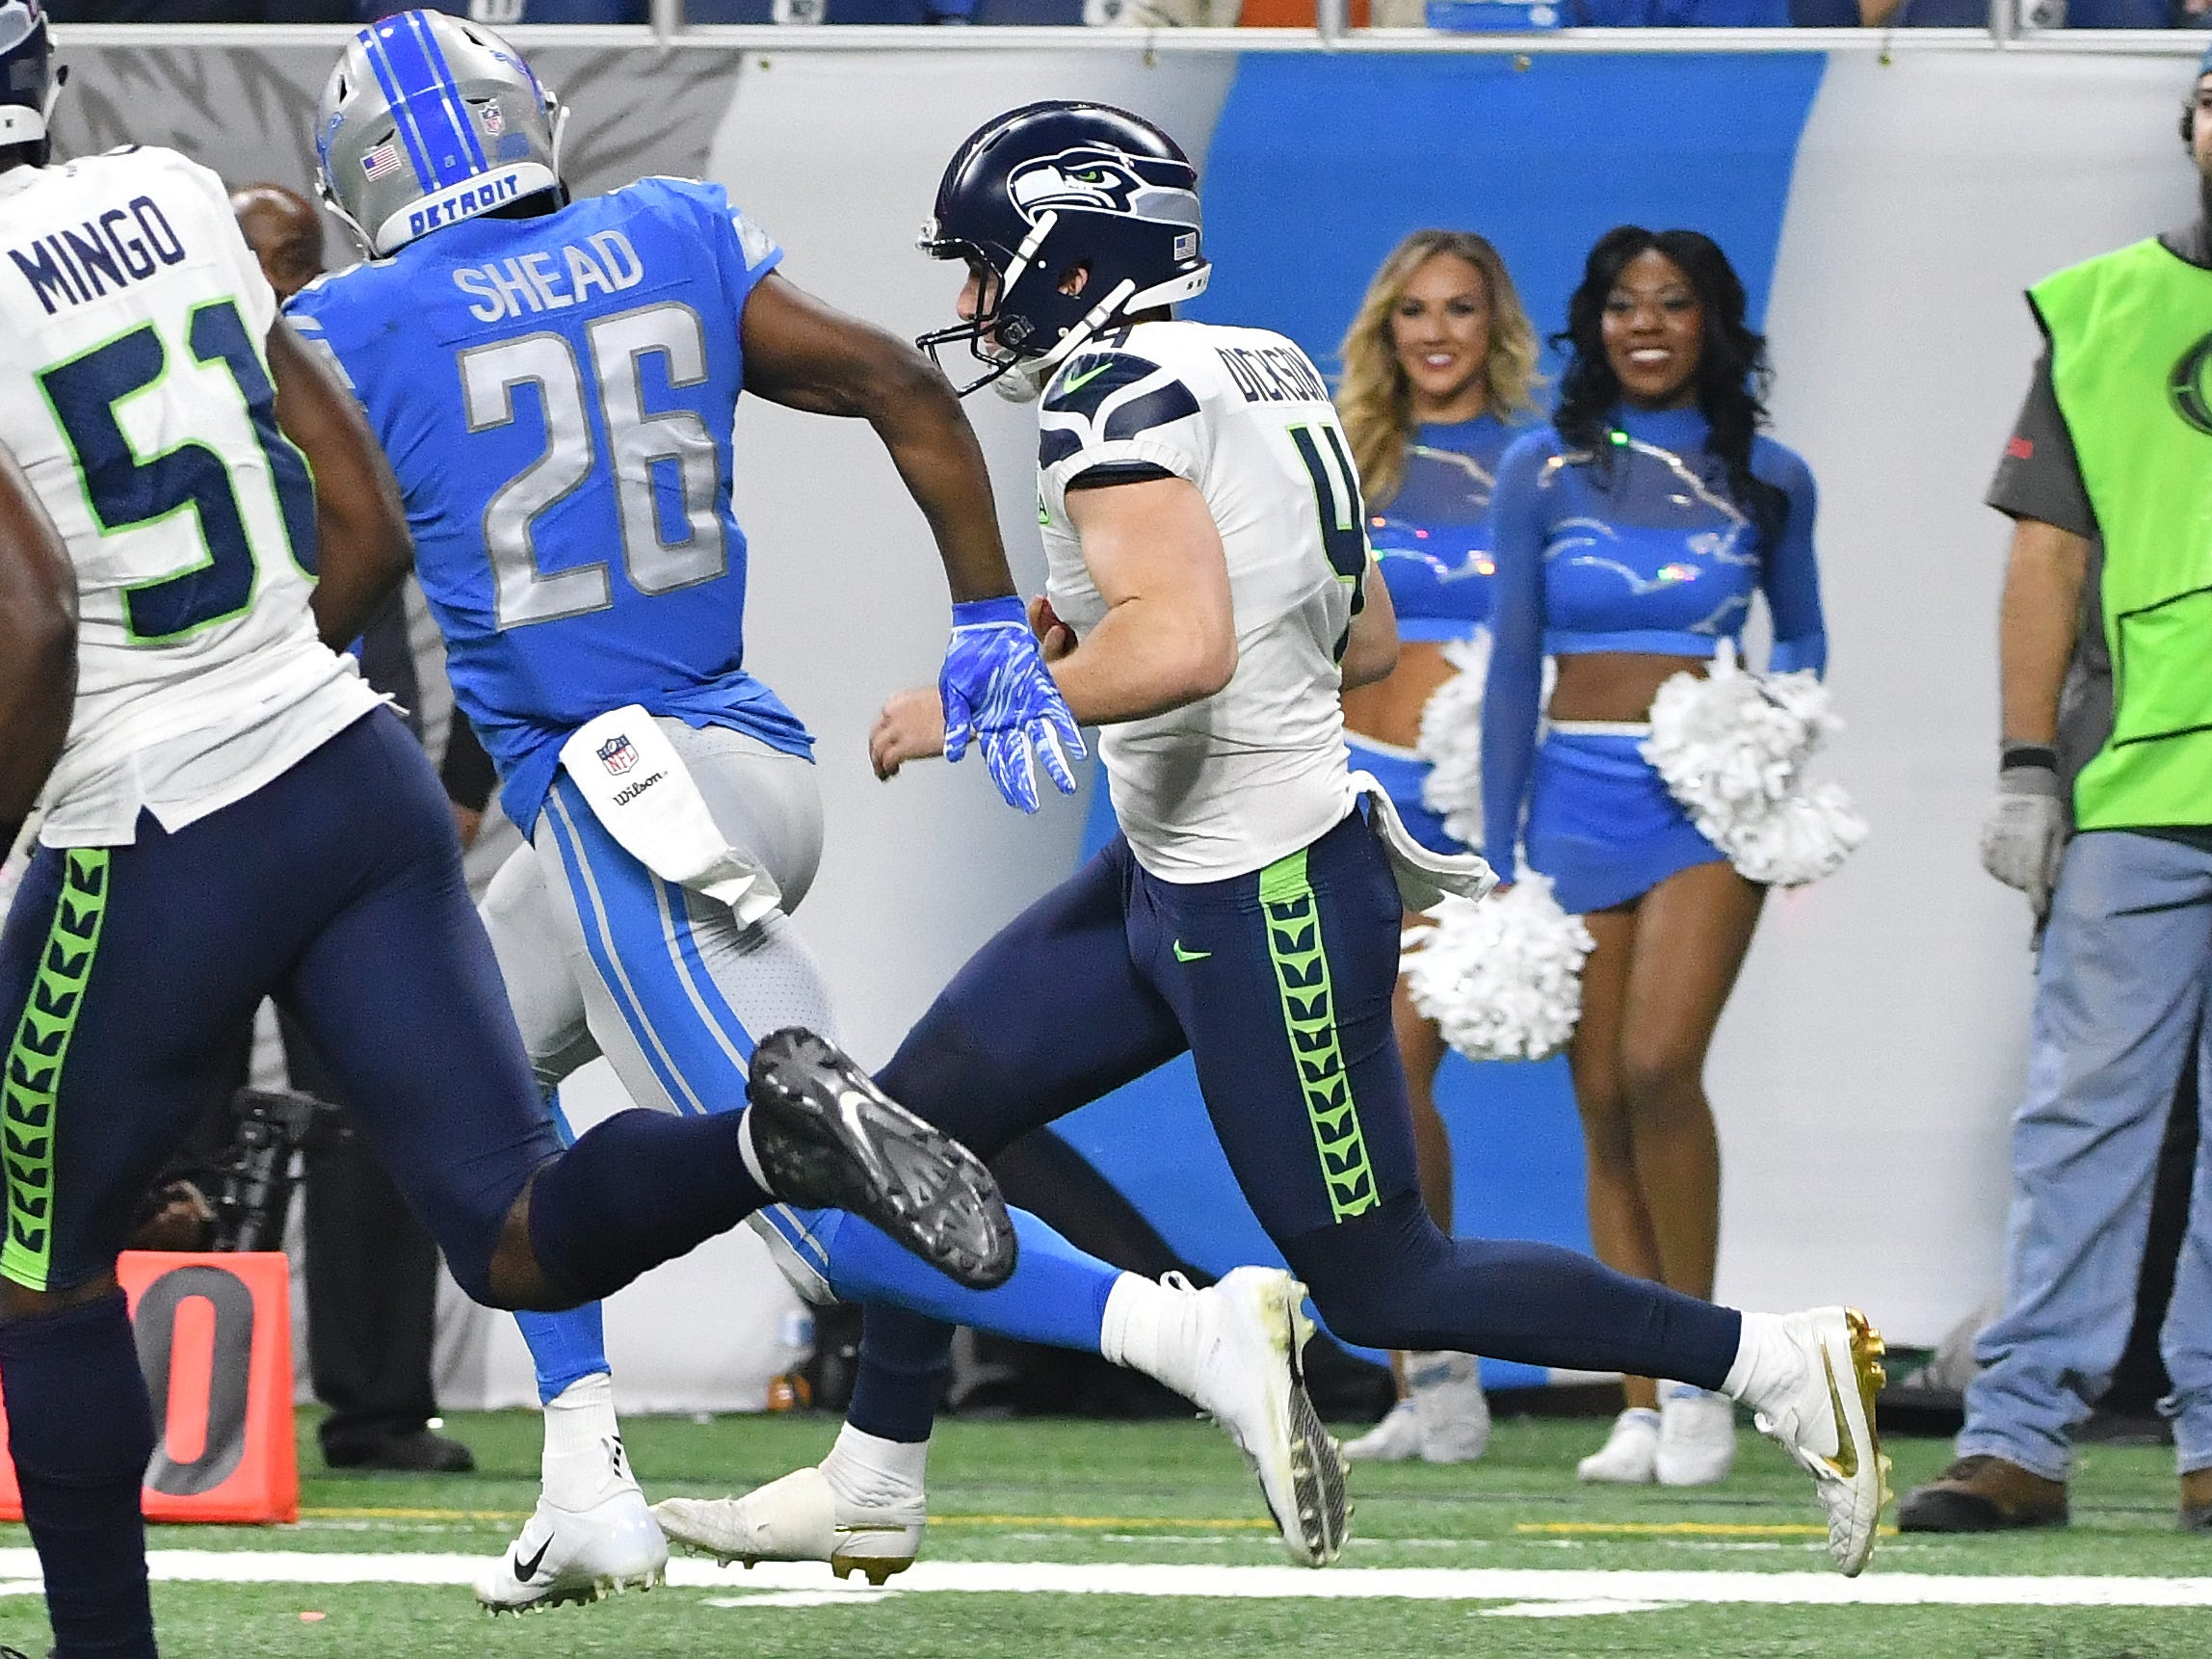 Seahawks punter Michael Dickson fakes the kick from the end zone and instead, runs the ball out, picking up a first down and allowing Seattle to burn time on the clock with a new set of downs late in the fourth quarter.